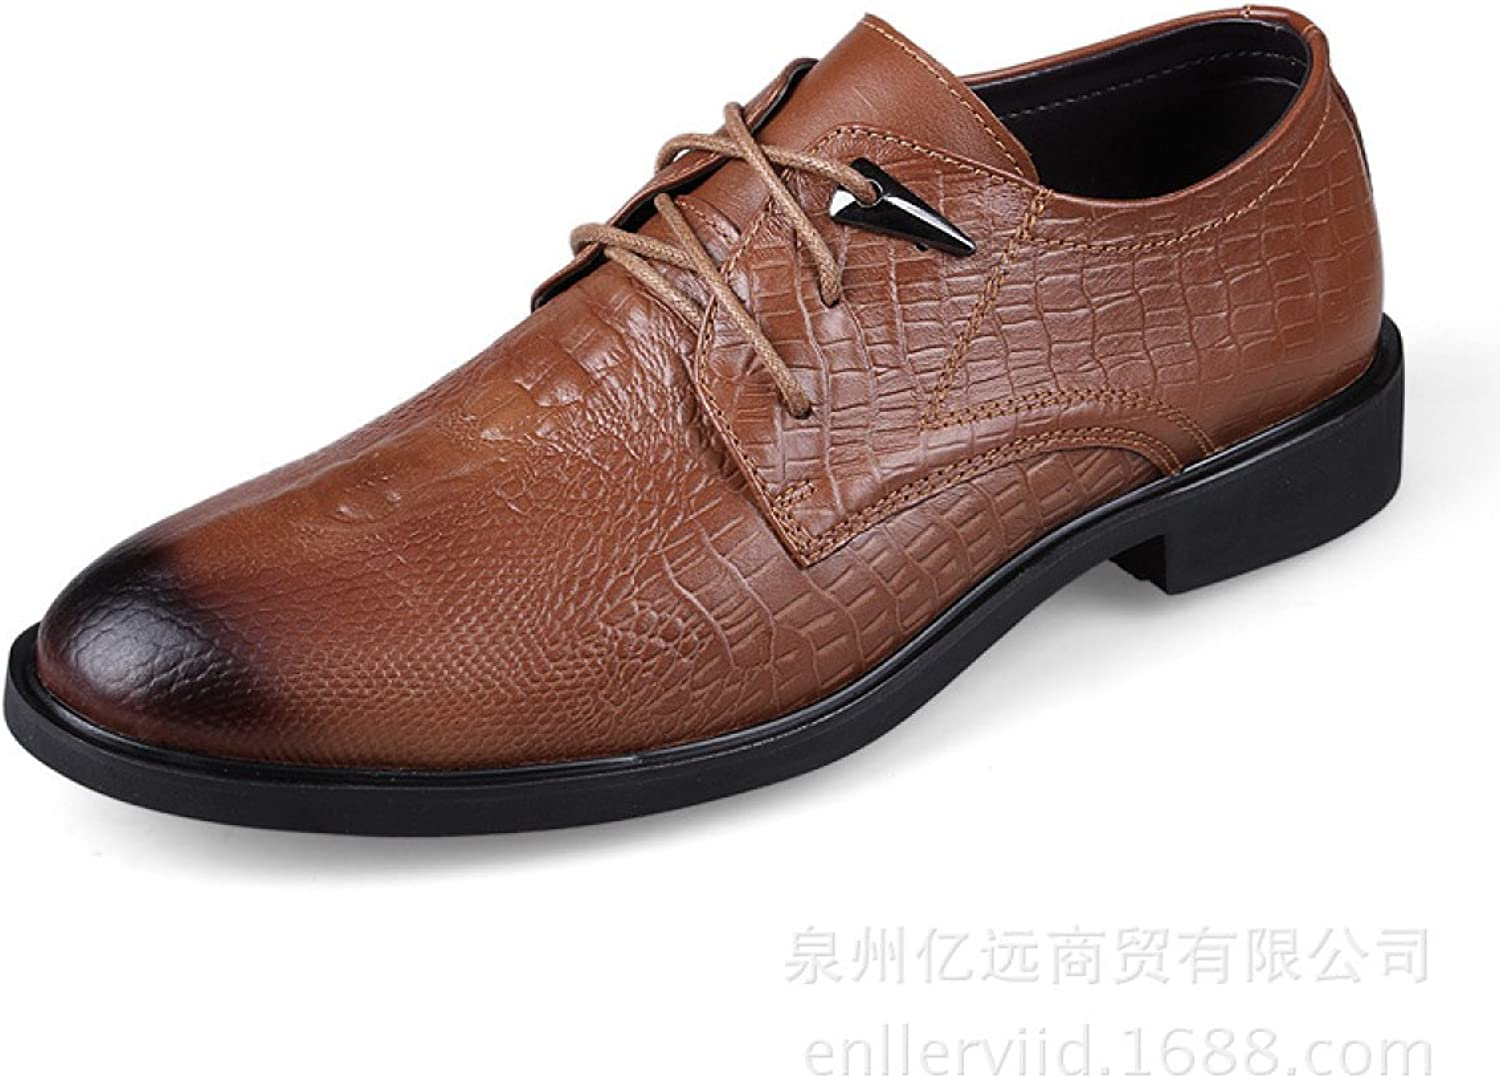 Leather Men's Casual shoes Crocodile Pattern Dress Low To Help Men's shoes Lace shoes